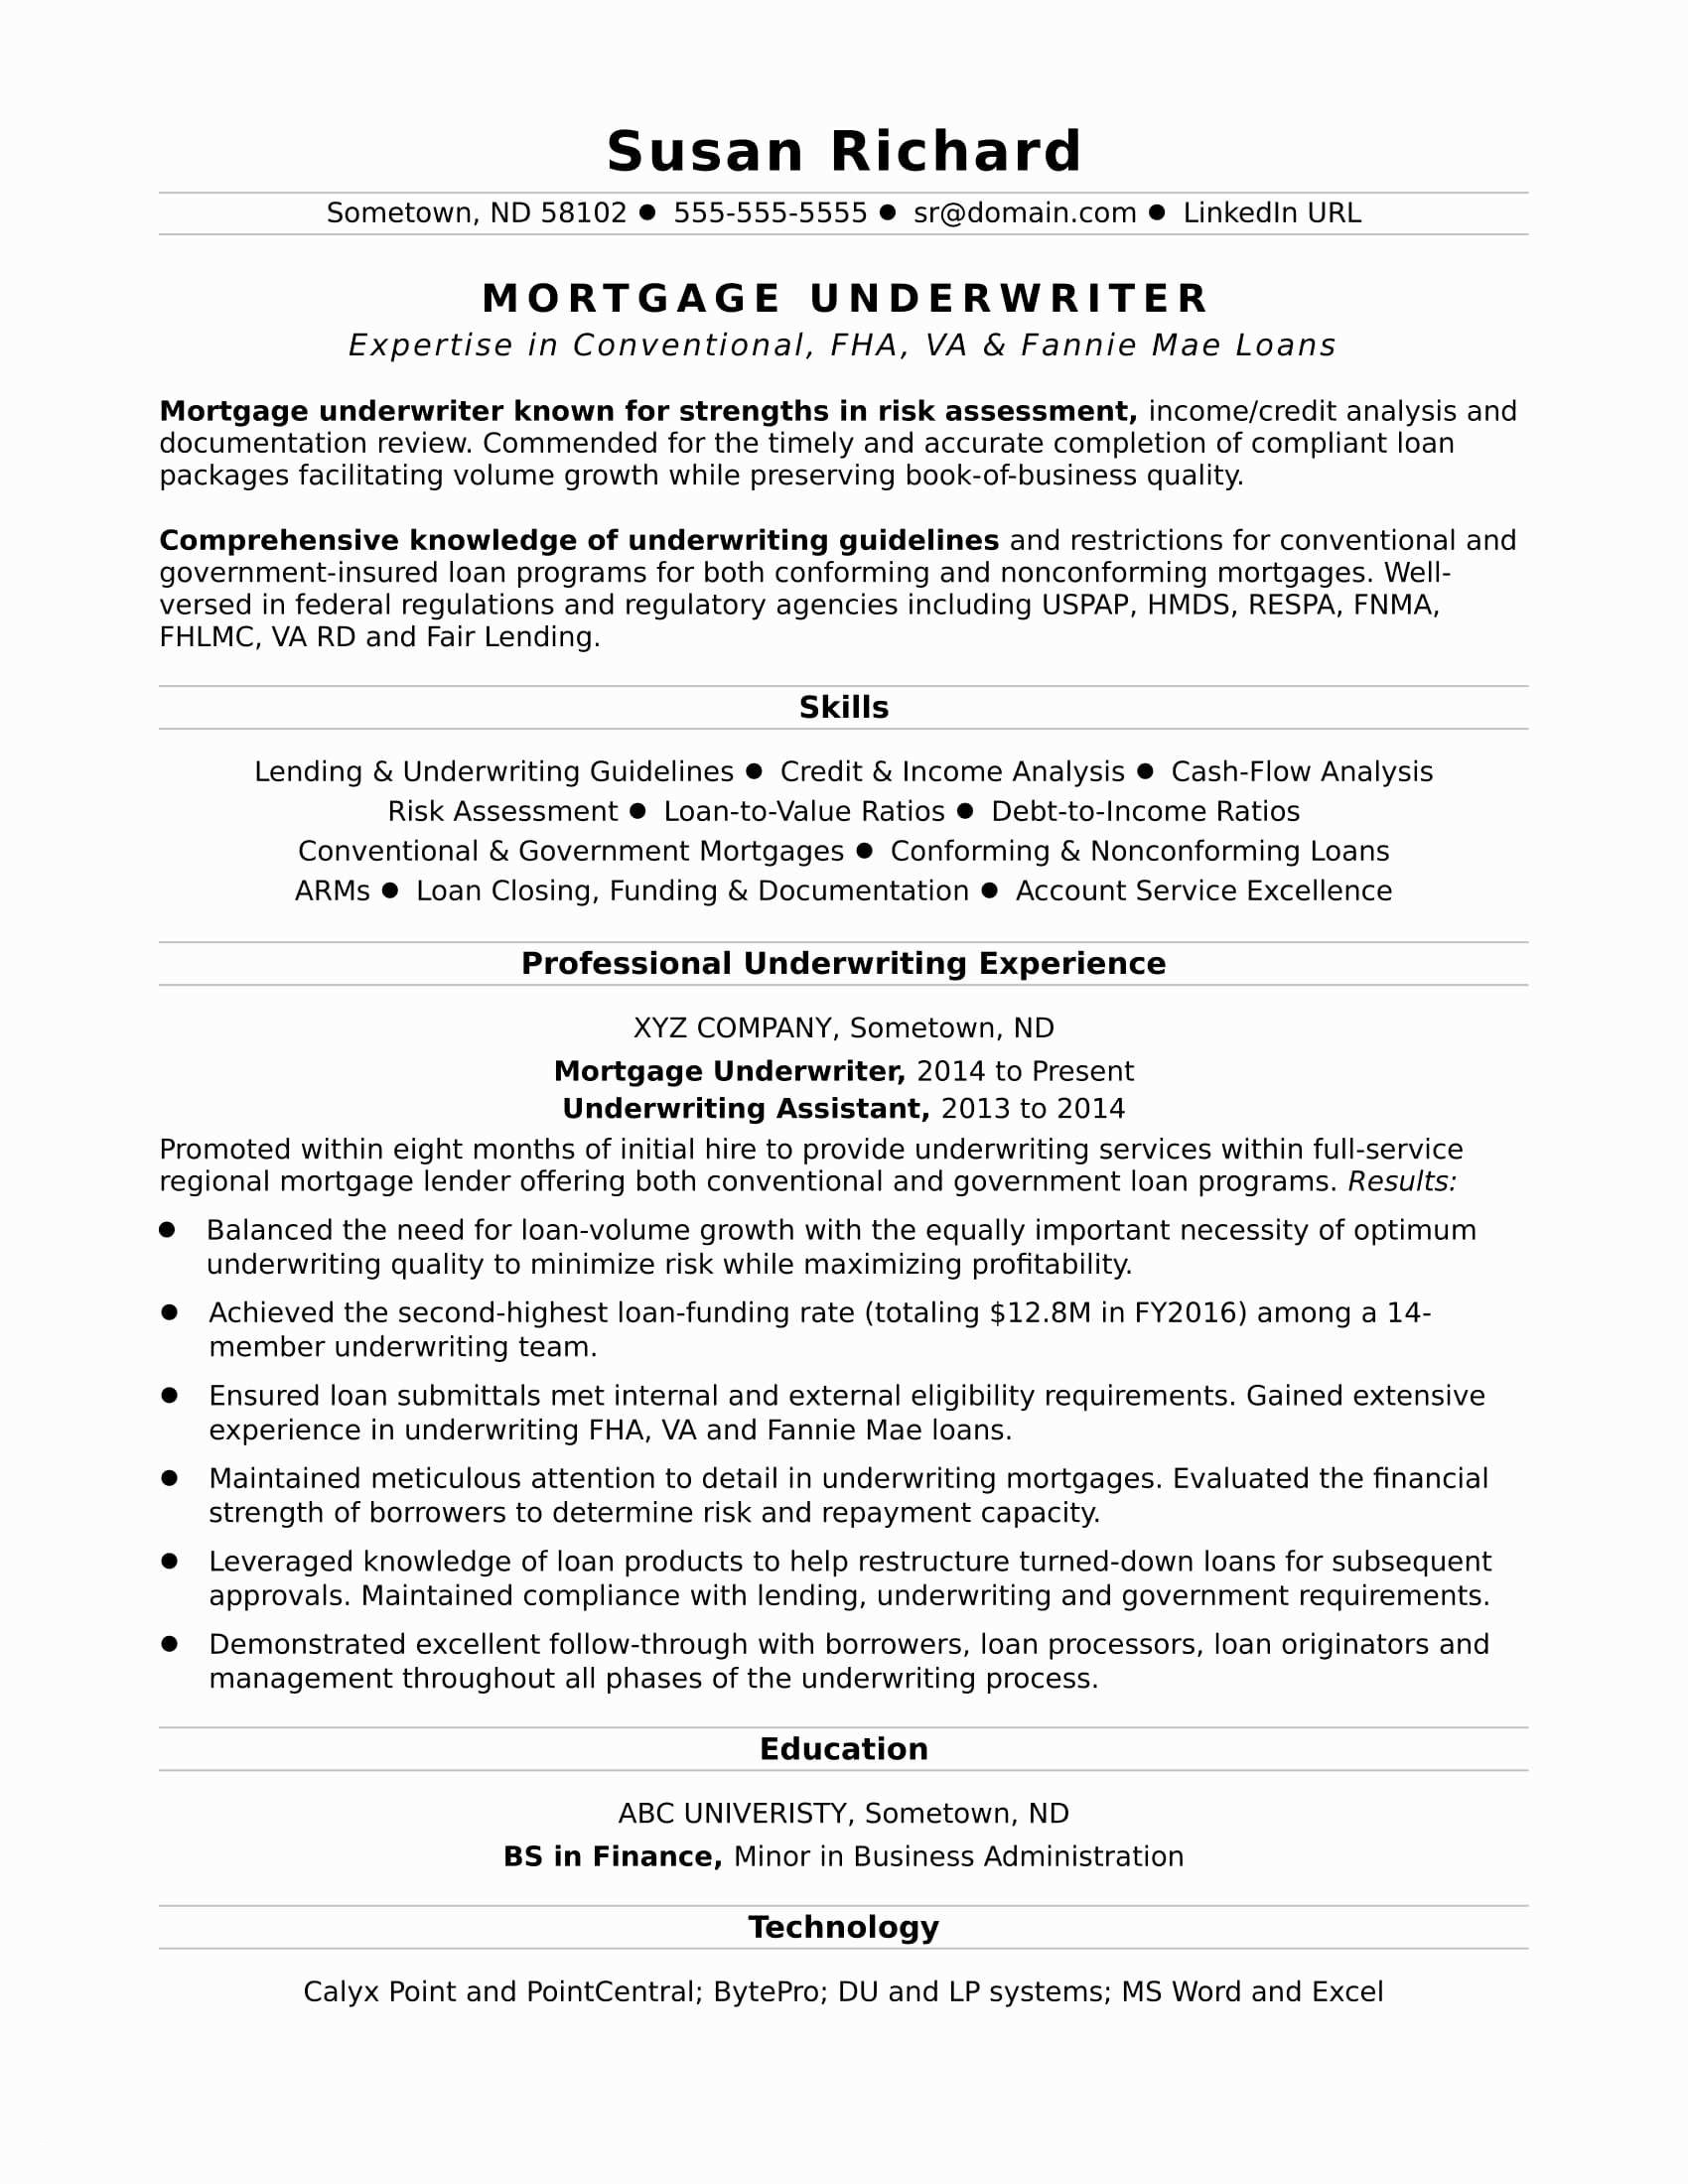 Resume and Cover Letter Template Microsoft Word - Teaching Resume Cover Letter New Sample Cover Letter Template Lovely